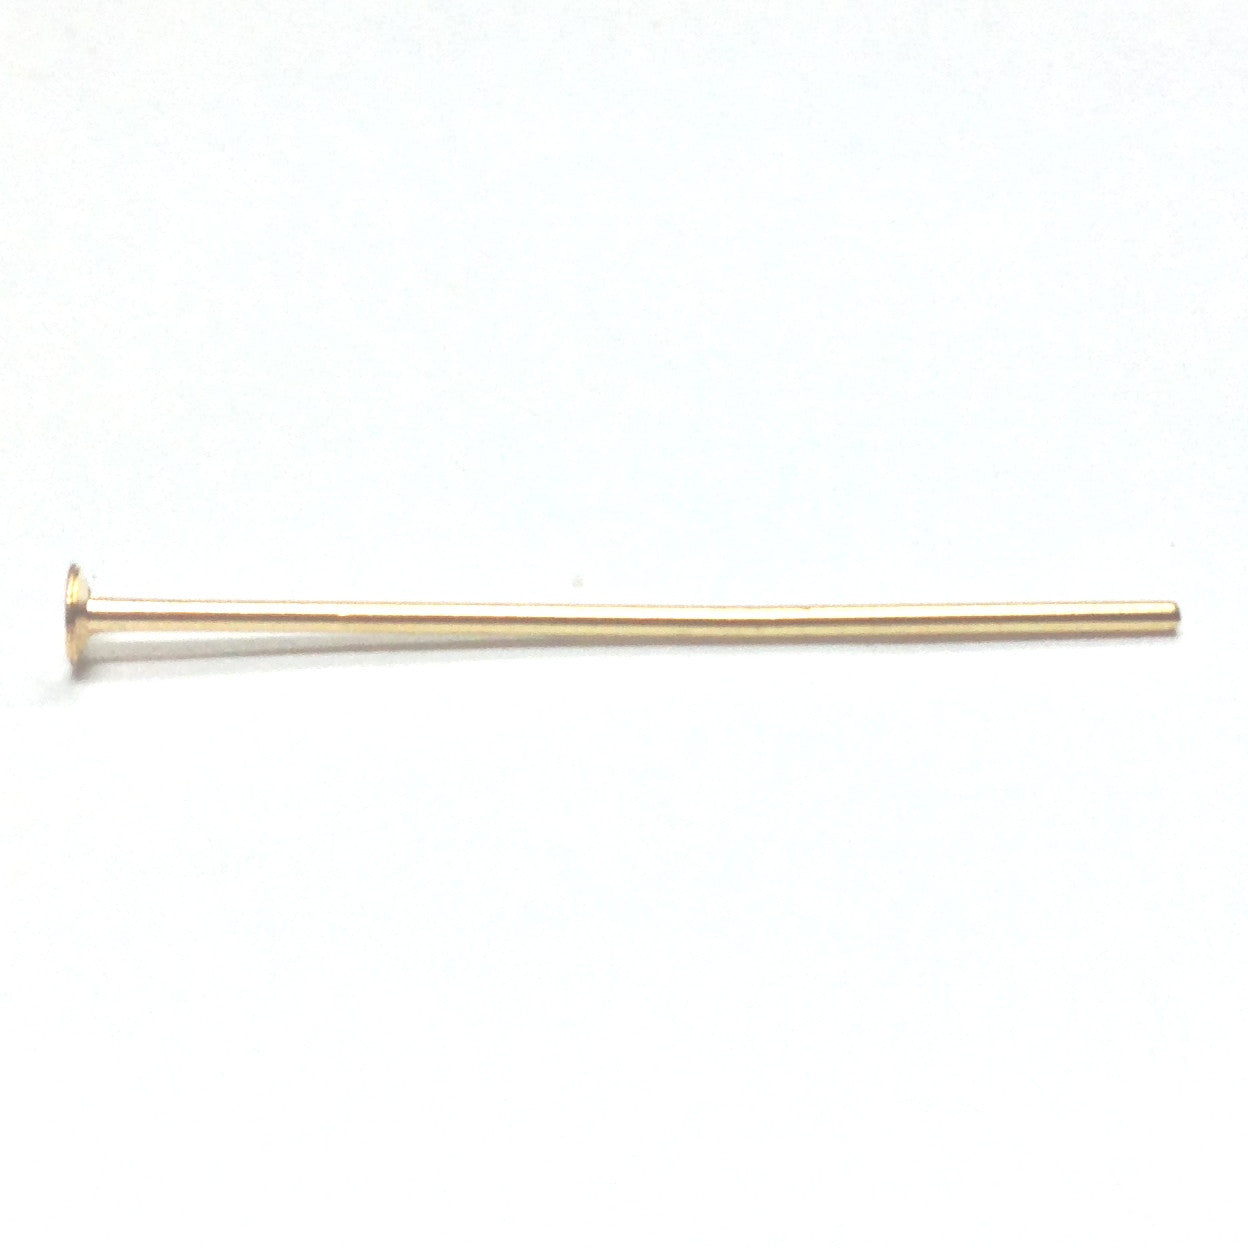 "1.5"" Brass Headpin (.025) 1 Lb. (~4176 pieces)"